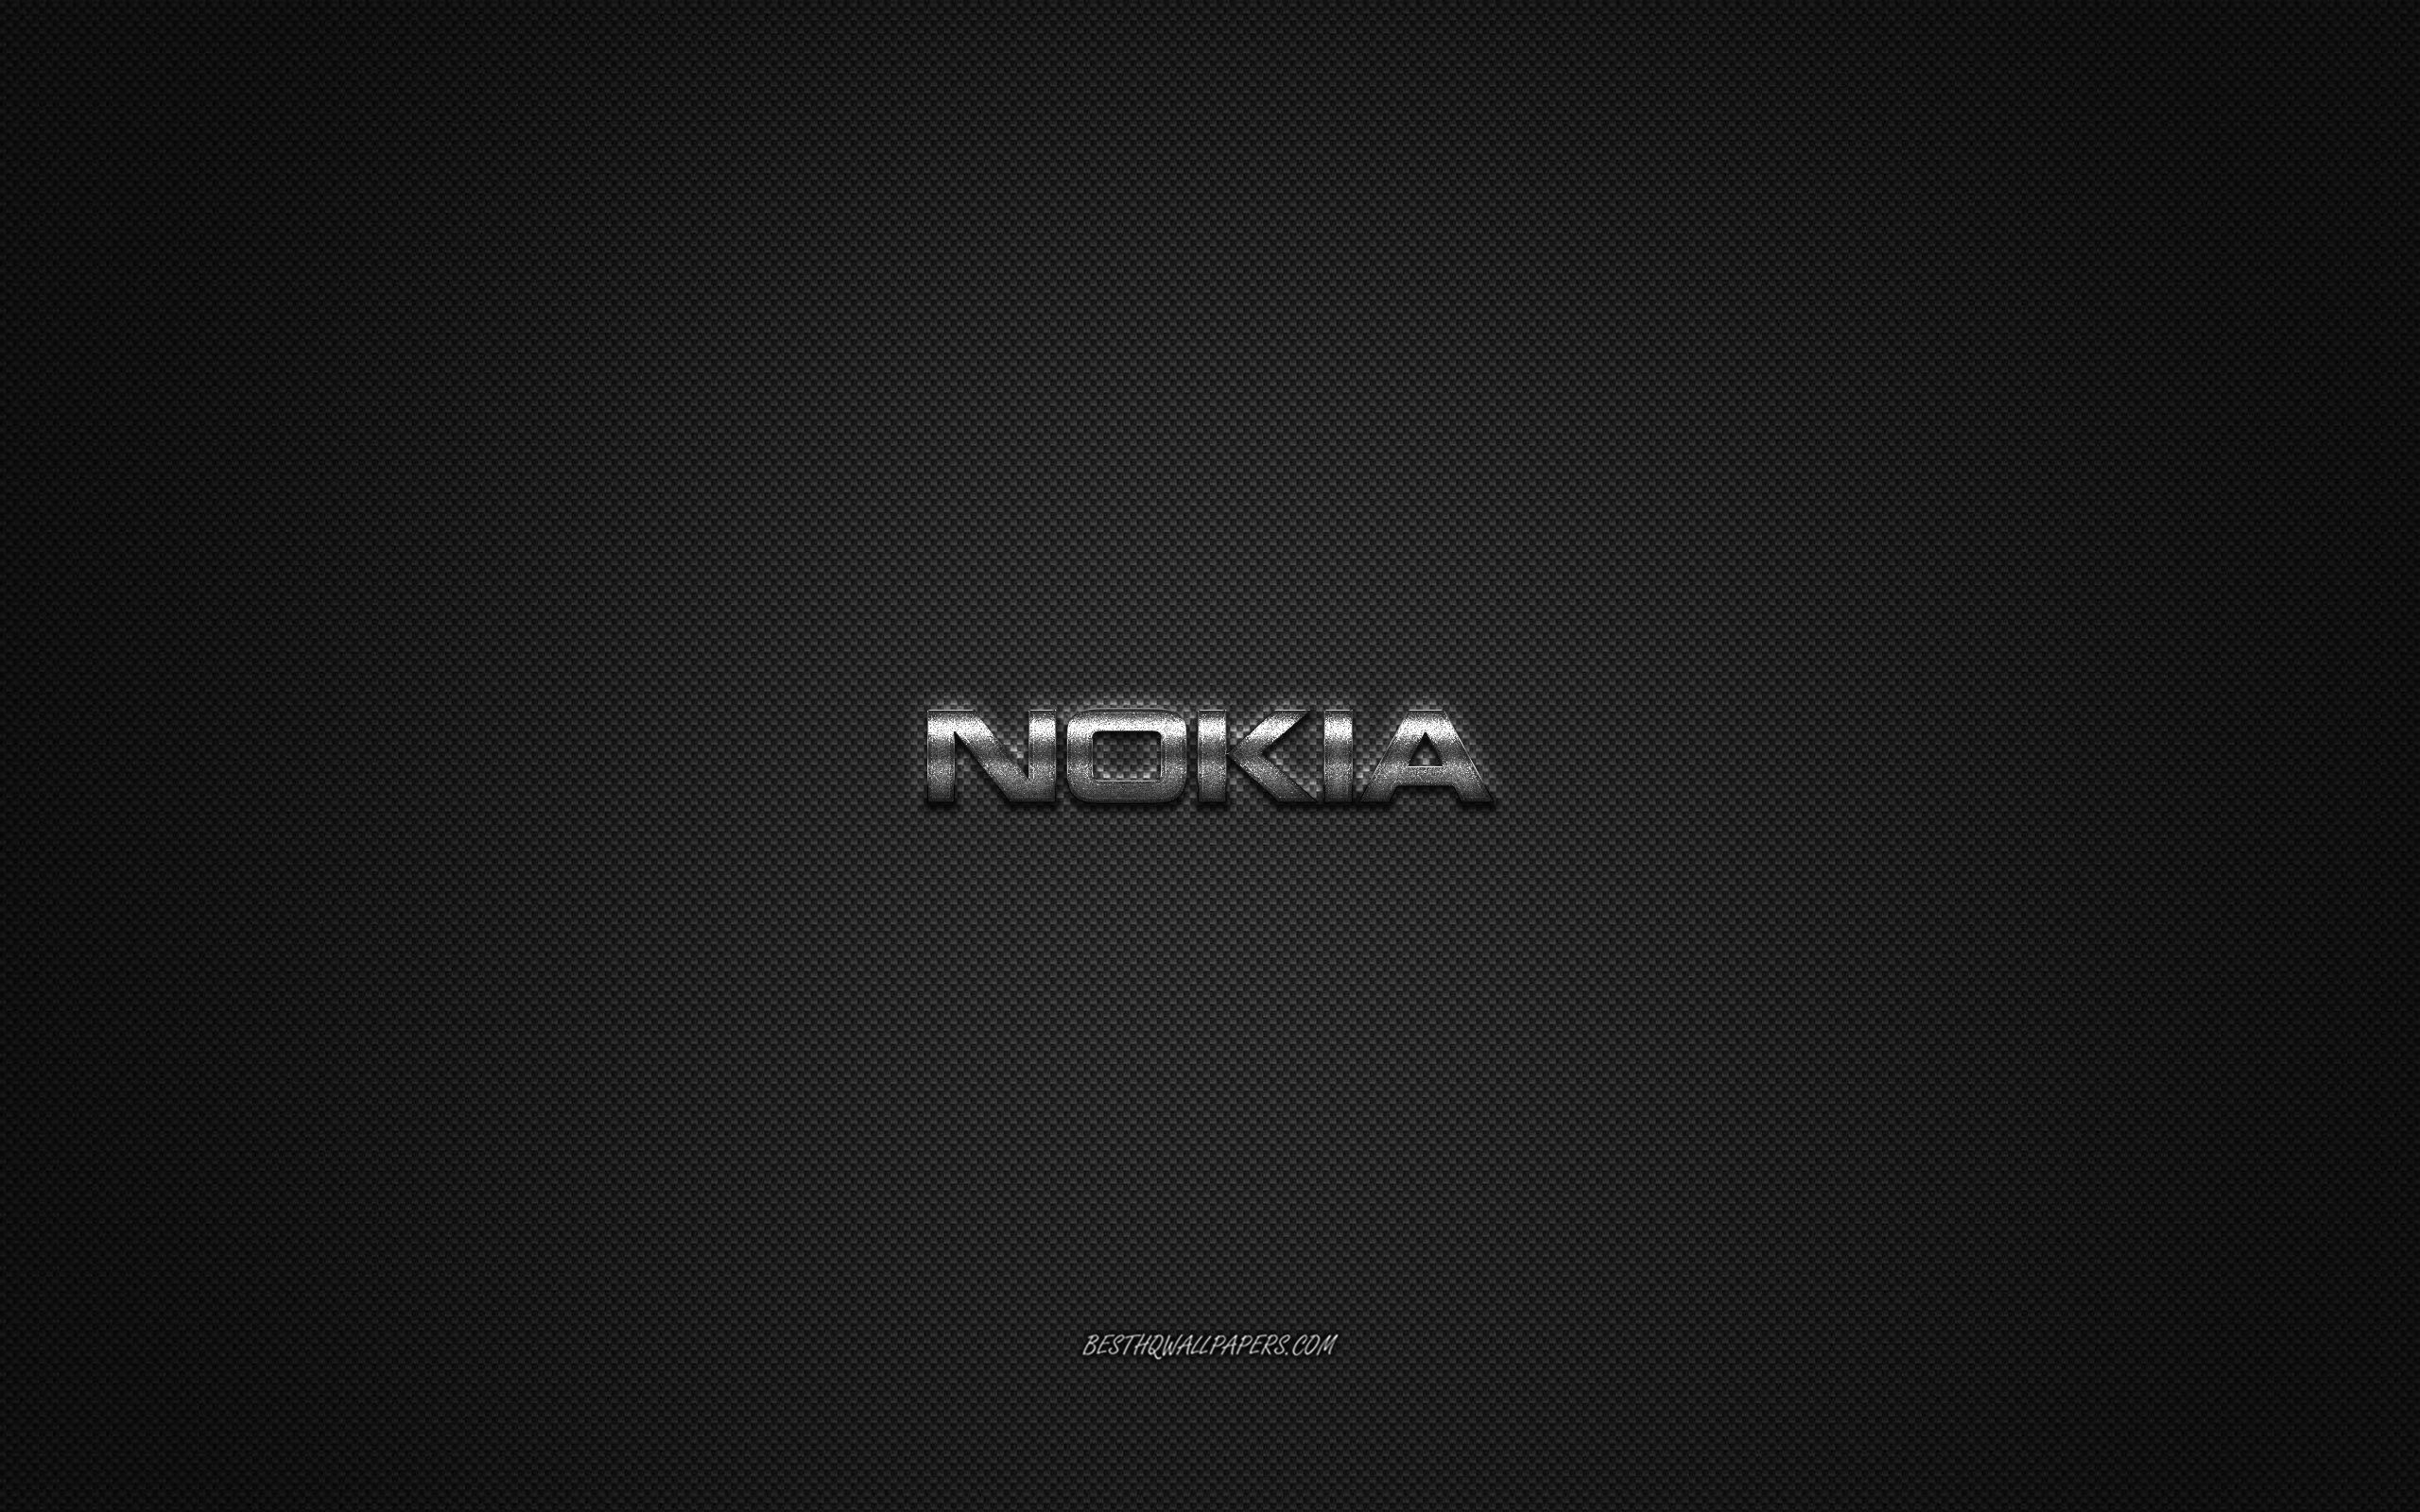 Black Nokia Wallpapers Top Free Black Nokia Backgrounds Wallpaperaccess